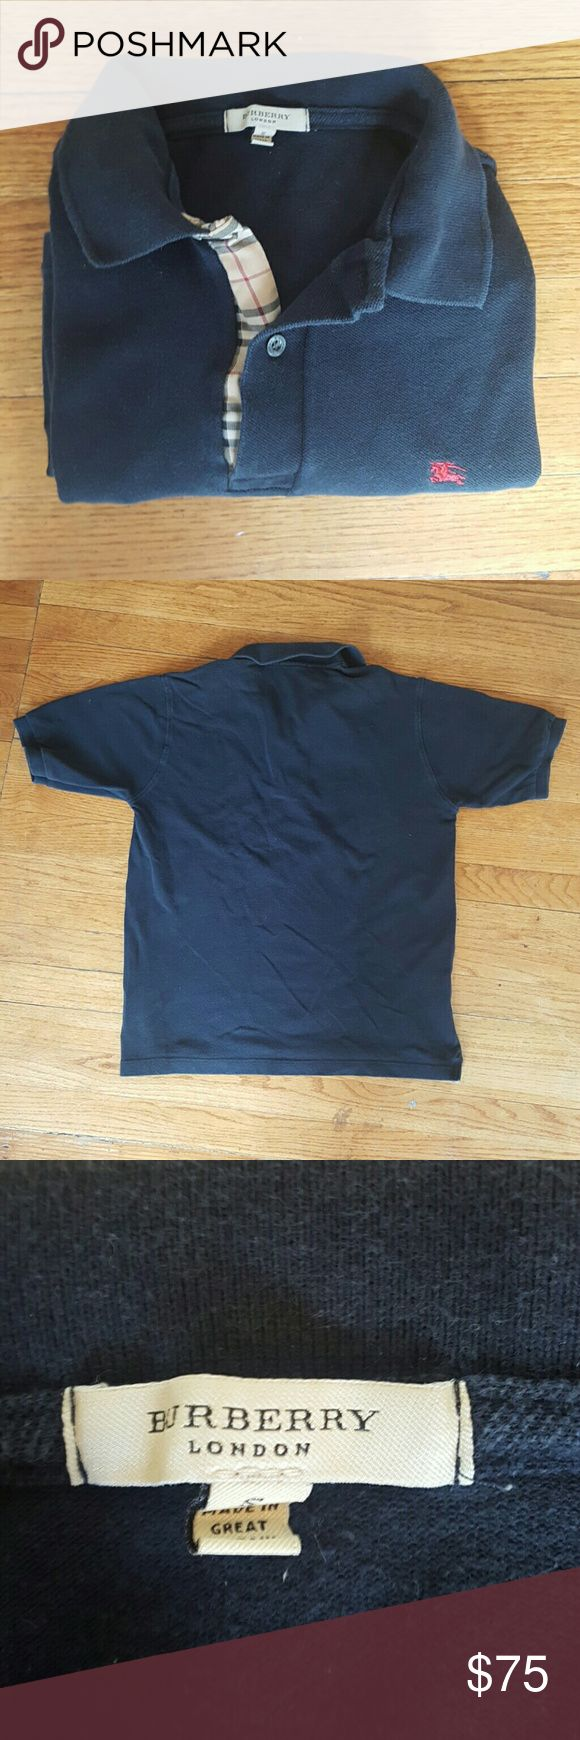 BURBERRY MENS BLACK POLO SHIRT size small BURBERRY LONDON BLACK POLO SHIRT NOVACHECK PRINT GUC ALITTLE FADING  NOT NOTICEABLE SIZE SMALL SHORT SLEEVE MADE IN GREAT BRITAN! Burberry Shirts Polos